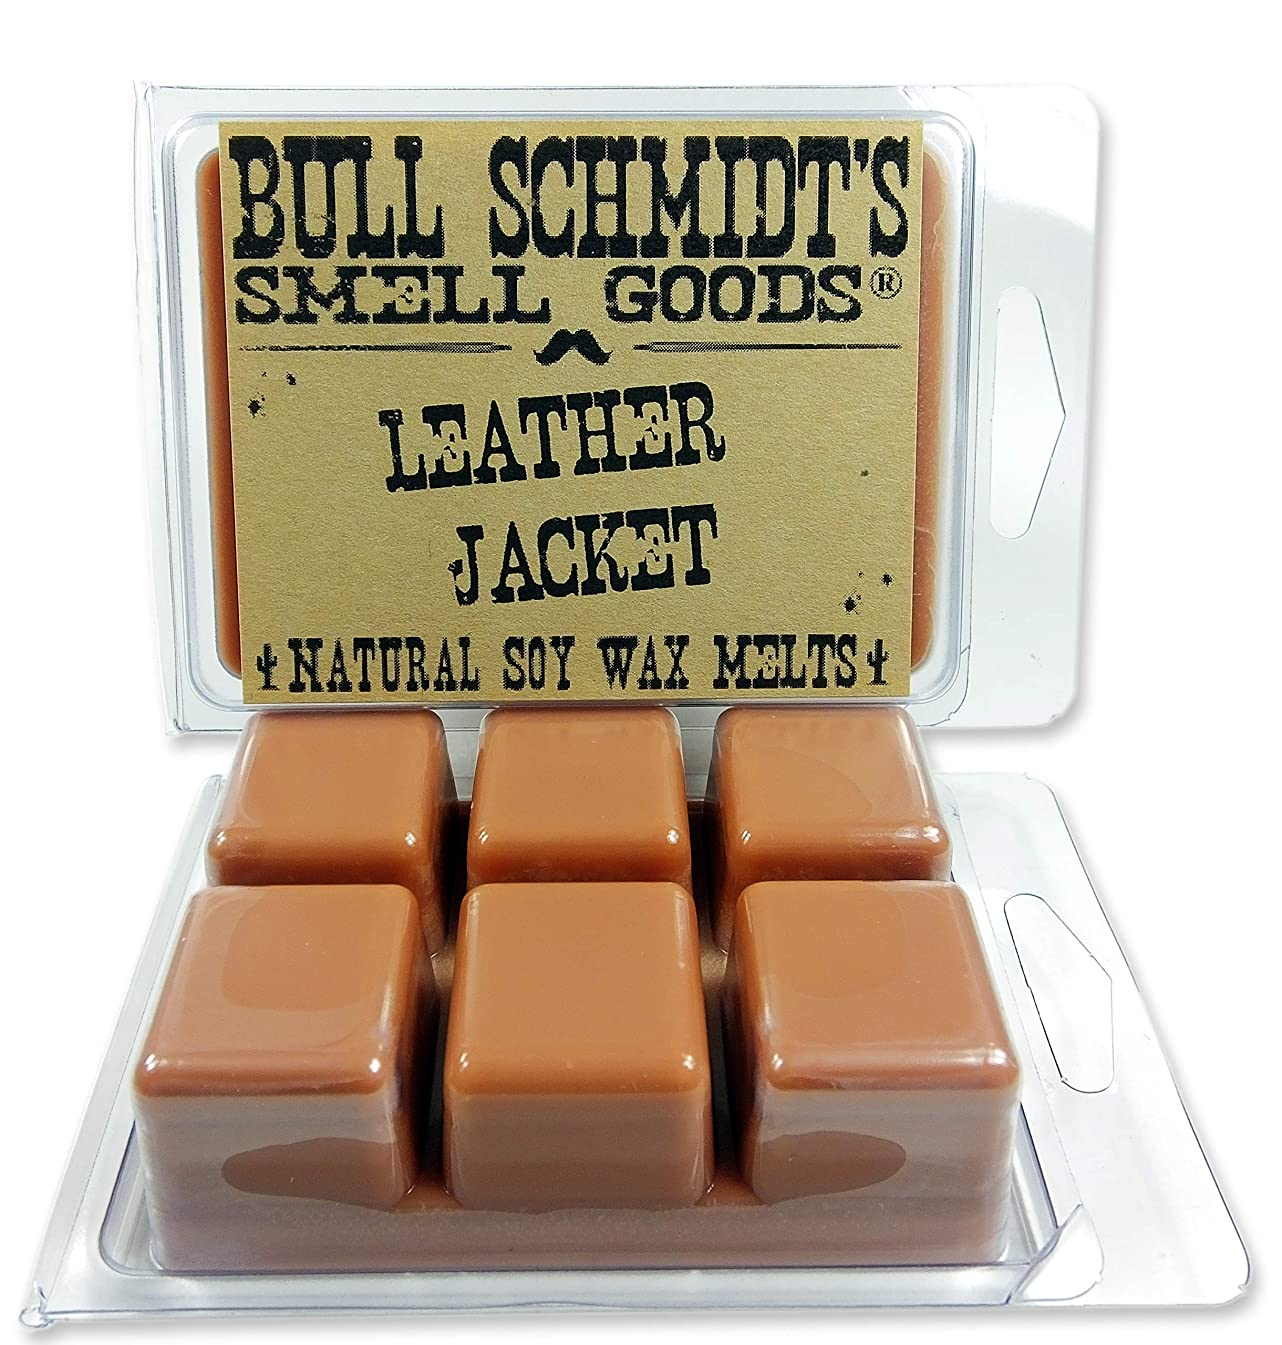 Bull Schmidt's Leather Jacket 6.4 oz Scented Wax Melts - Smells like a brand new WWII bomber jacket - 50+ hours of fragrance when melted in Scentsy or other tart warmer, Pack of 2